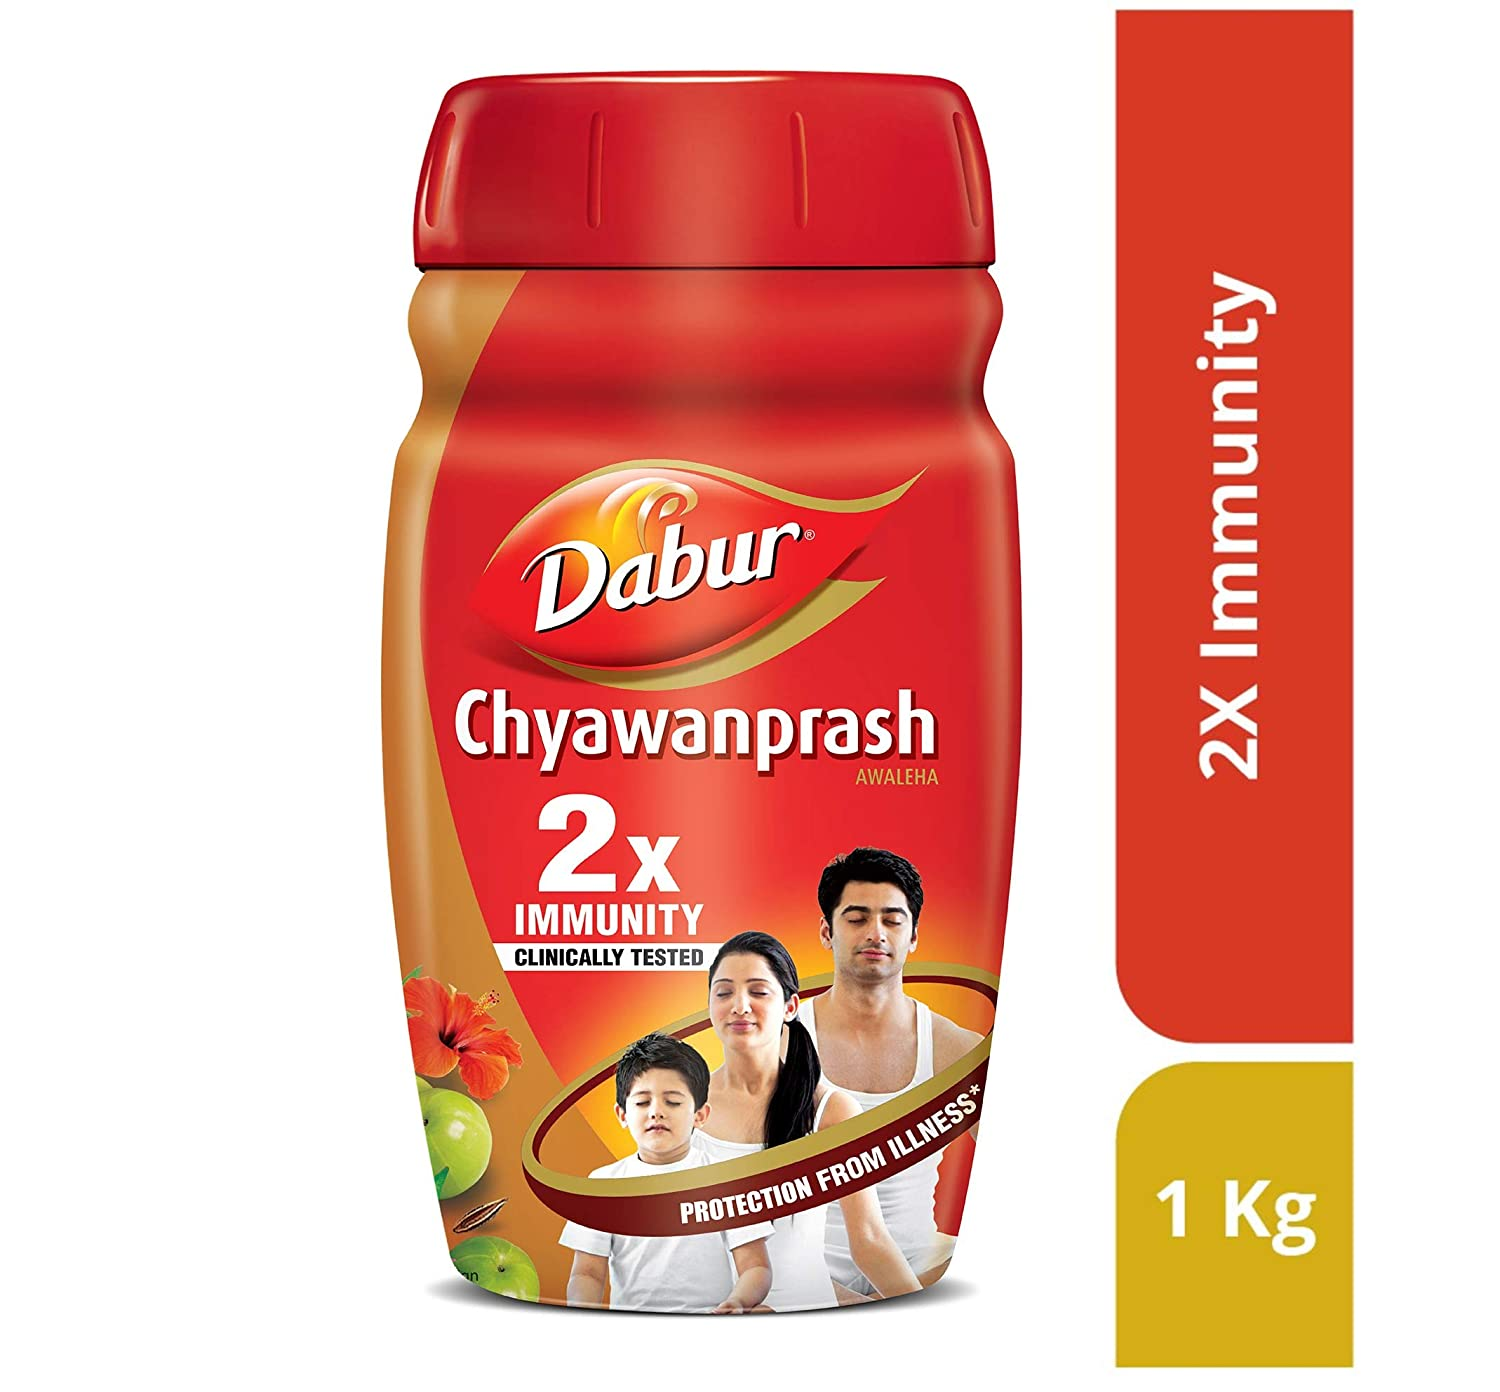 Is Dabur Chyawanprash good for health